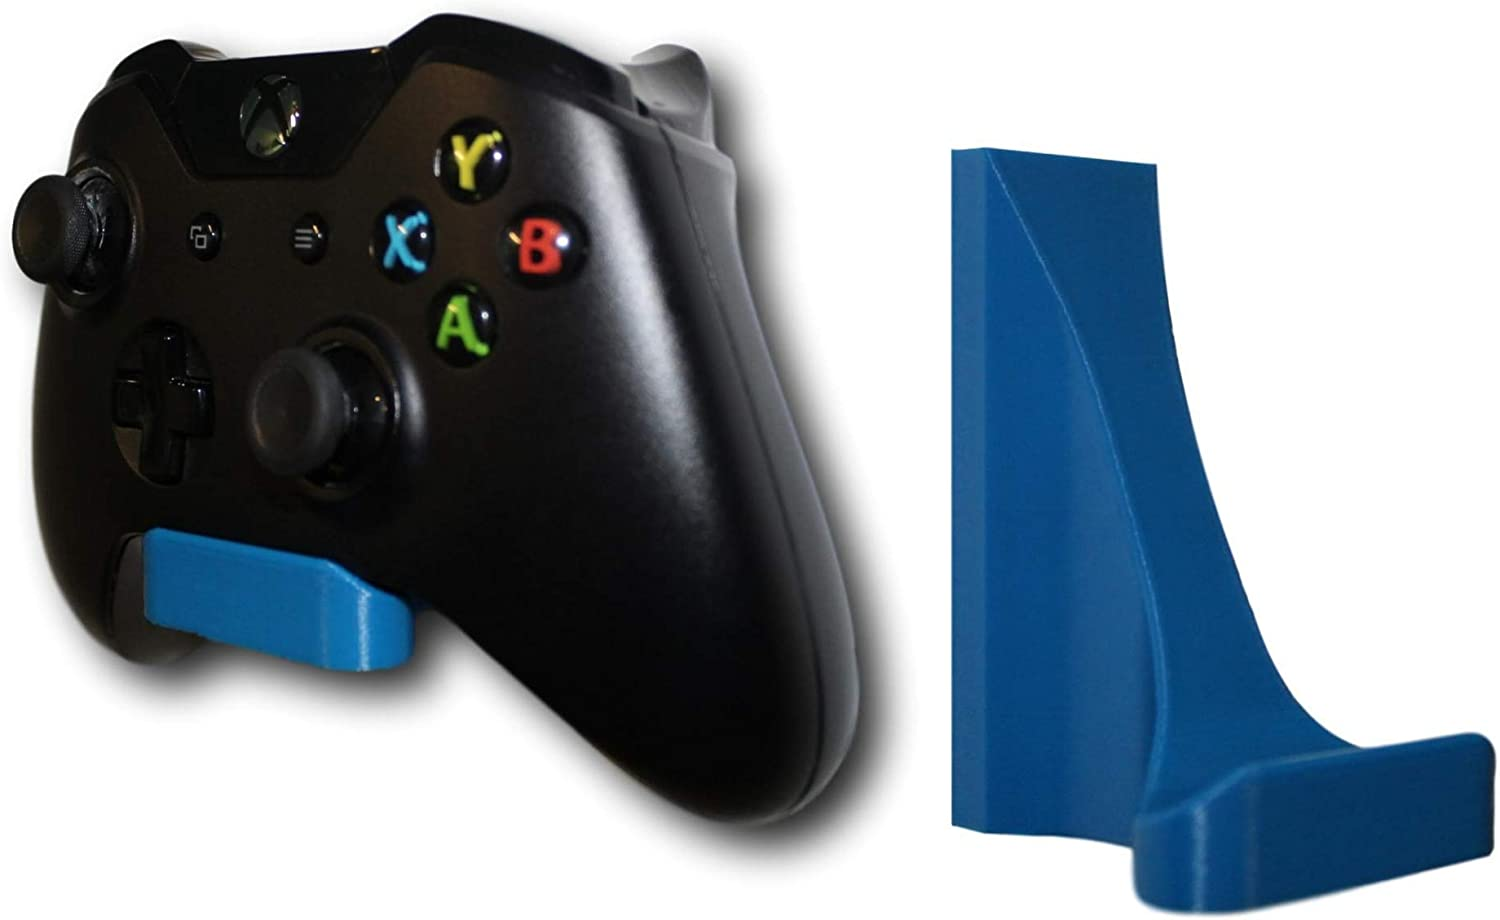 3d Lasers Lab Damage-Free Controller Wall Mount Kit for Xbox One, Microsoft, Easy Install, 3M Command Strip Included (Blue, 2)